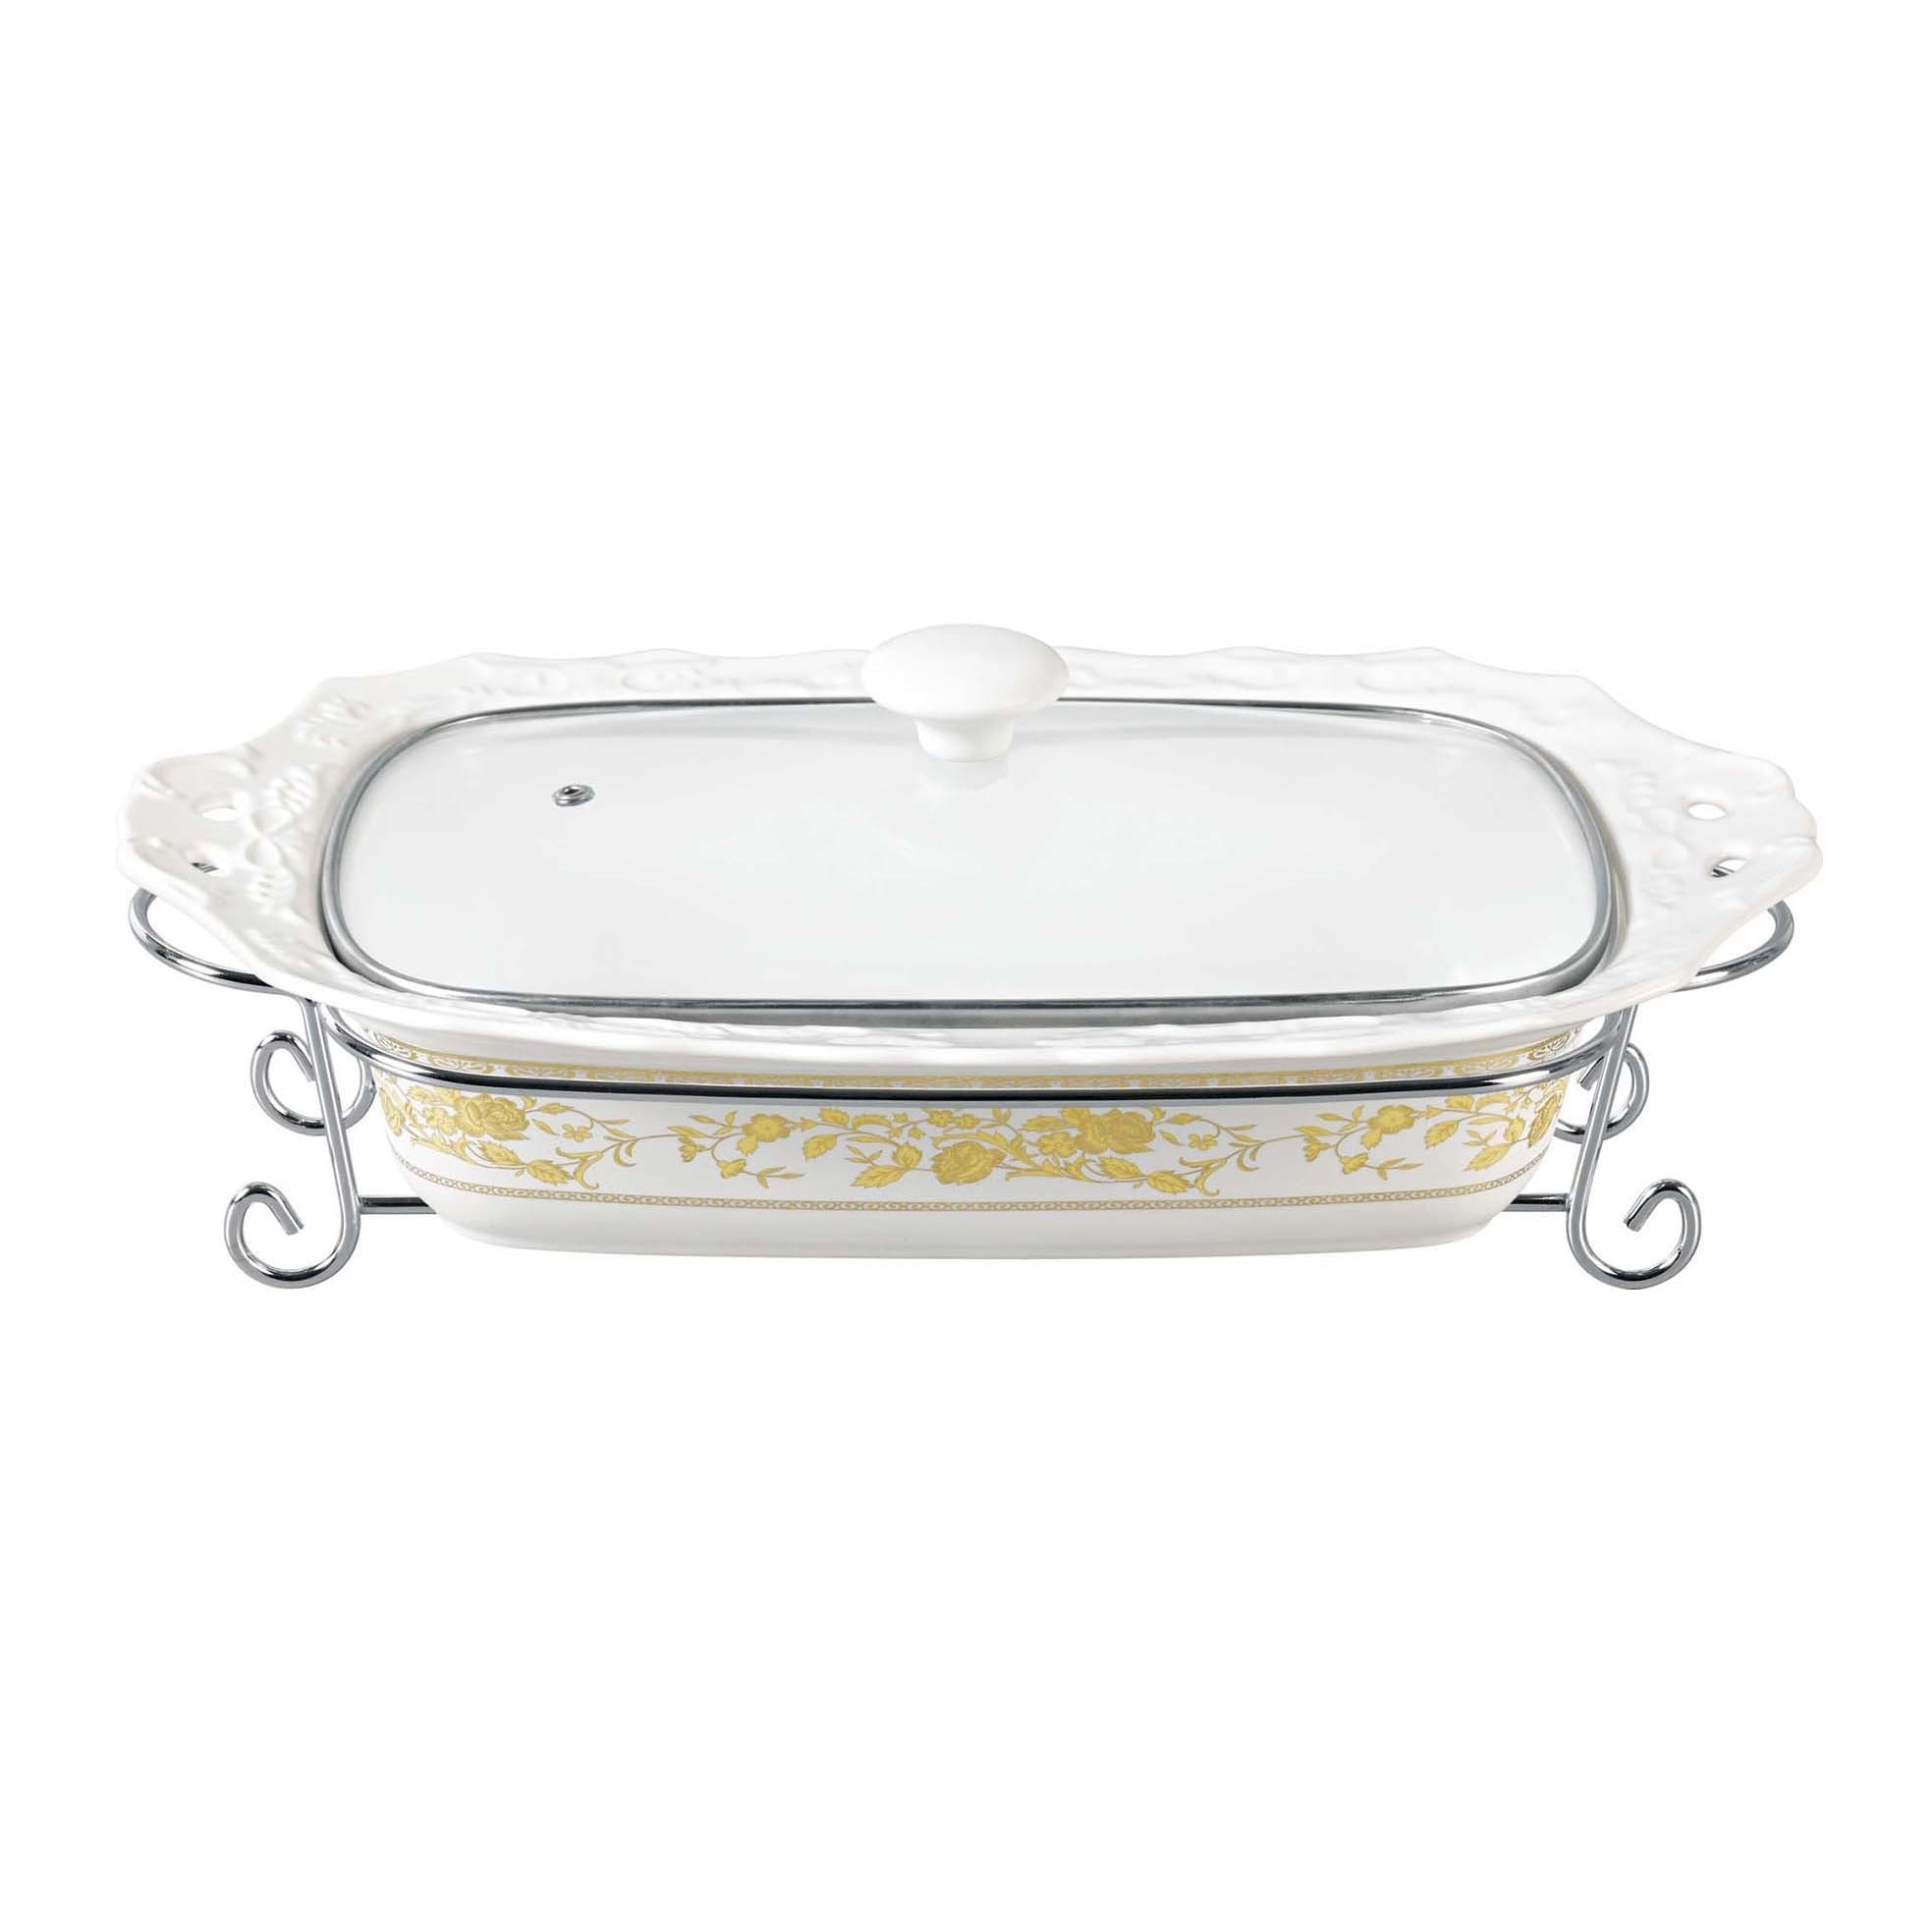 DLusso Designs Chic Design Fifteen Inch Rectangular Casserole With Metal Stand